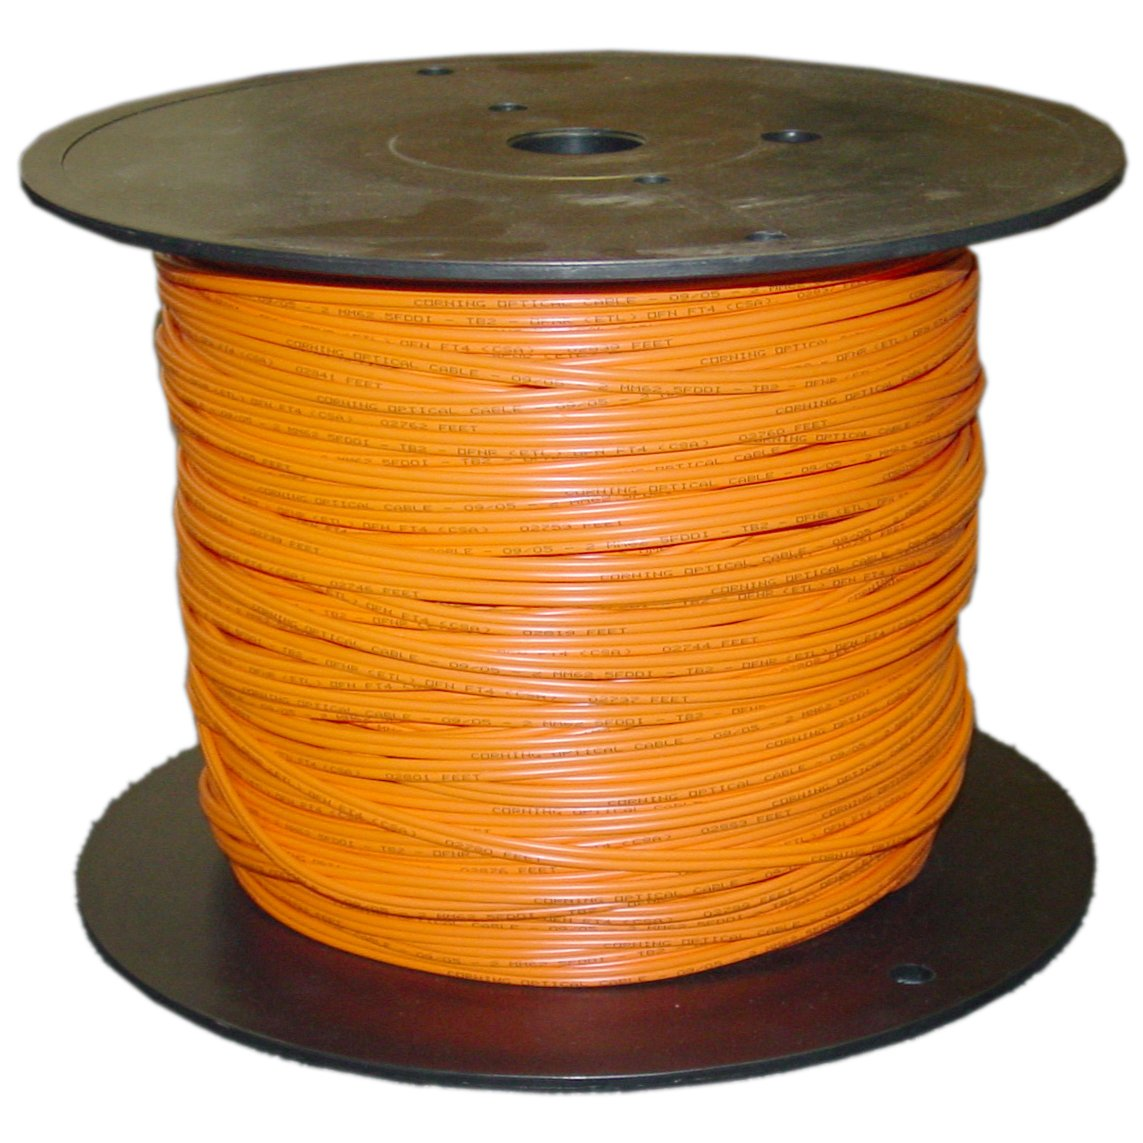 Amazon.com: 500 FT (500FT) Bulk Fiber Optic Cable Multimode 50/125 ...